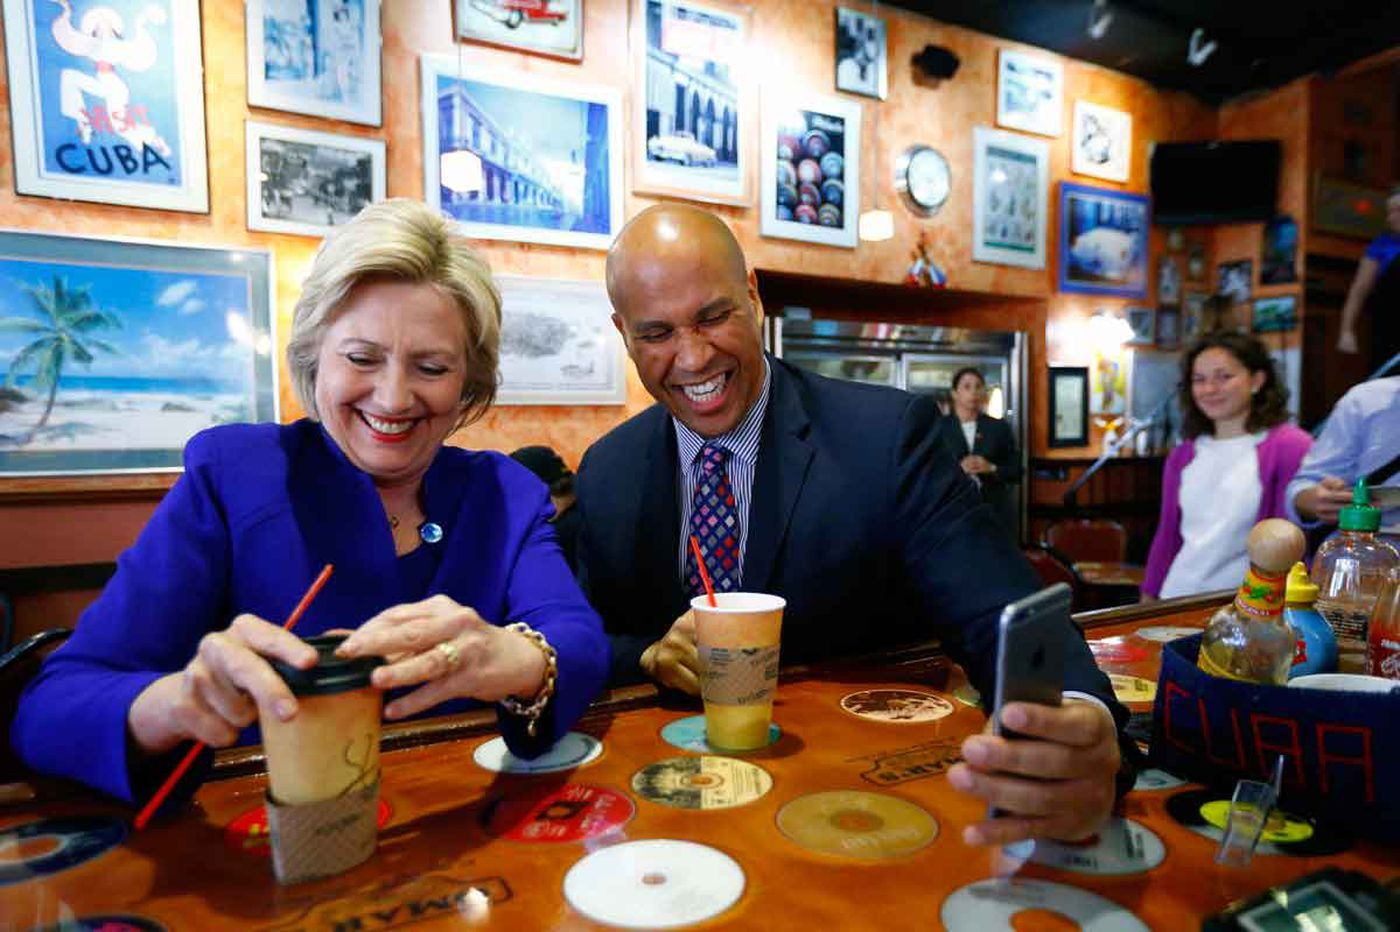 'A fire in my belly' - Why Cory Booker is stirring VP talk